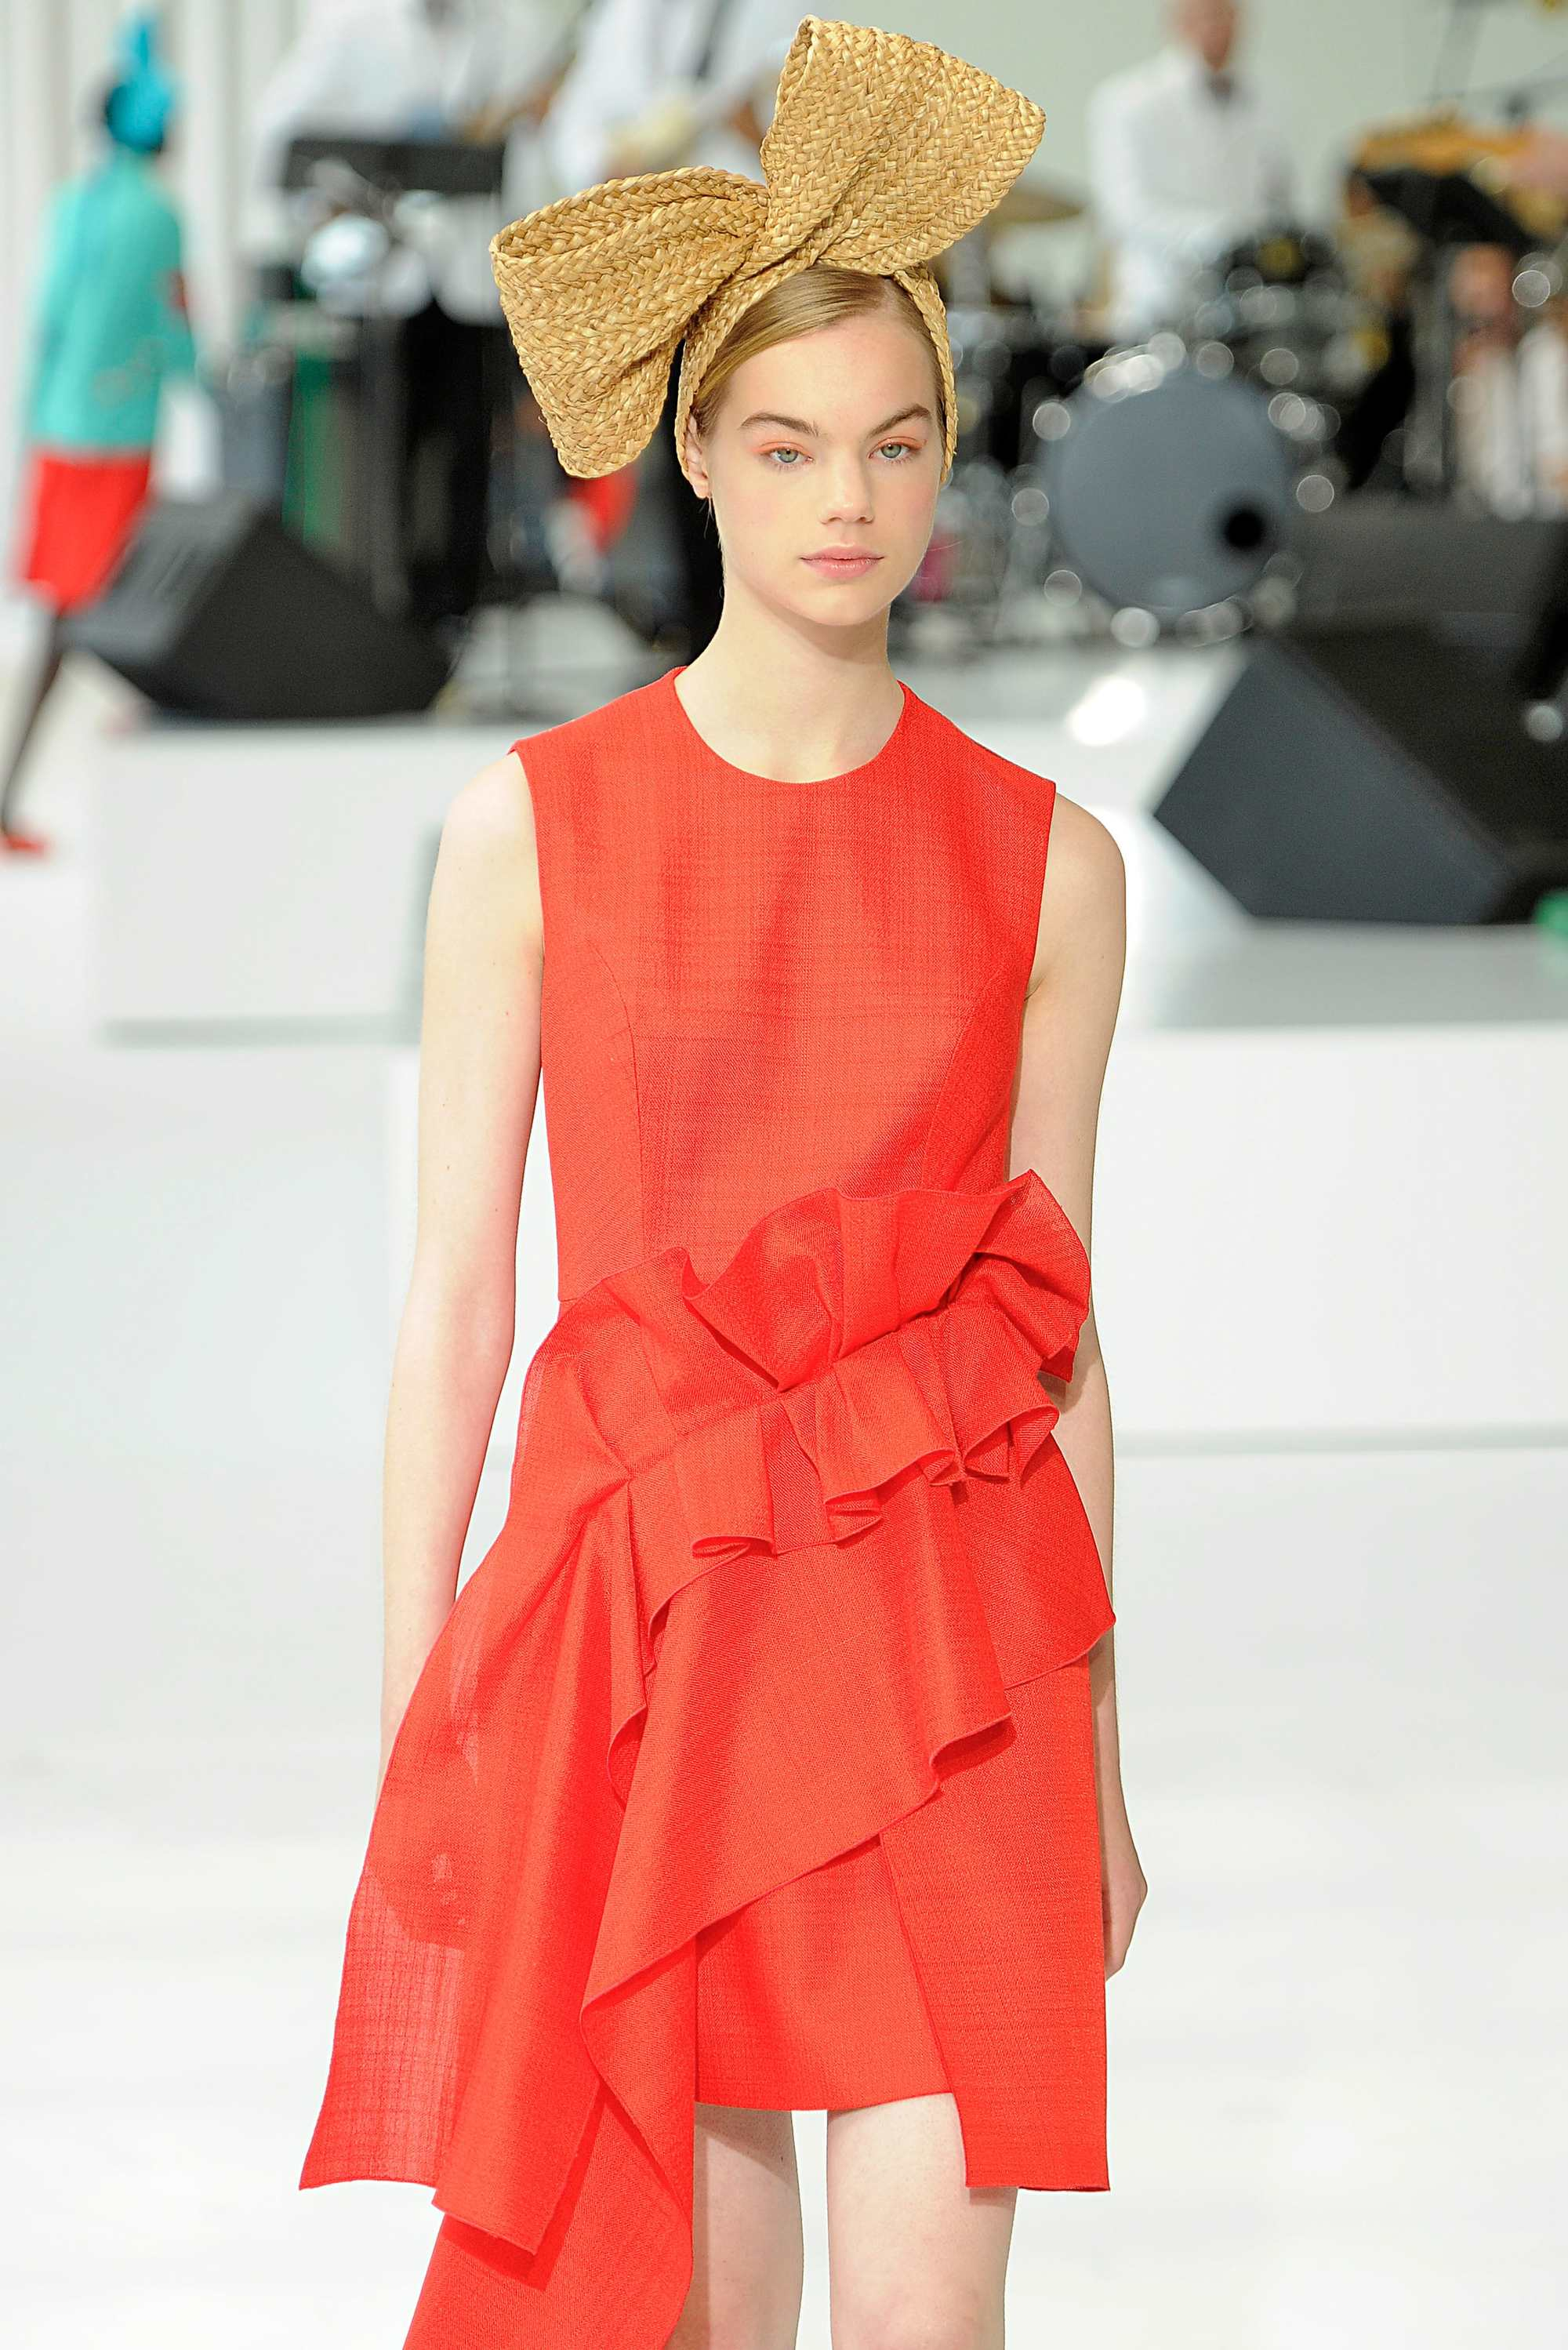 Ideas for crazy hair day: Runway model with a giant oversized bow hair accessory